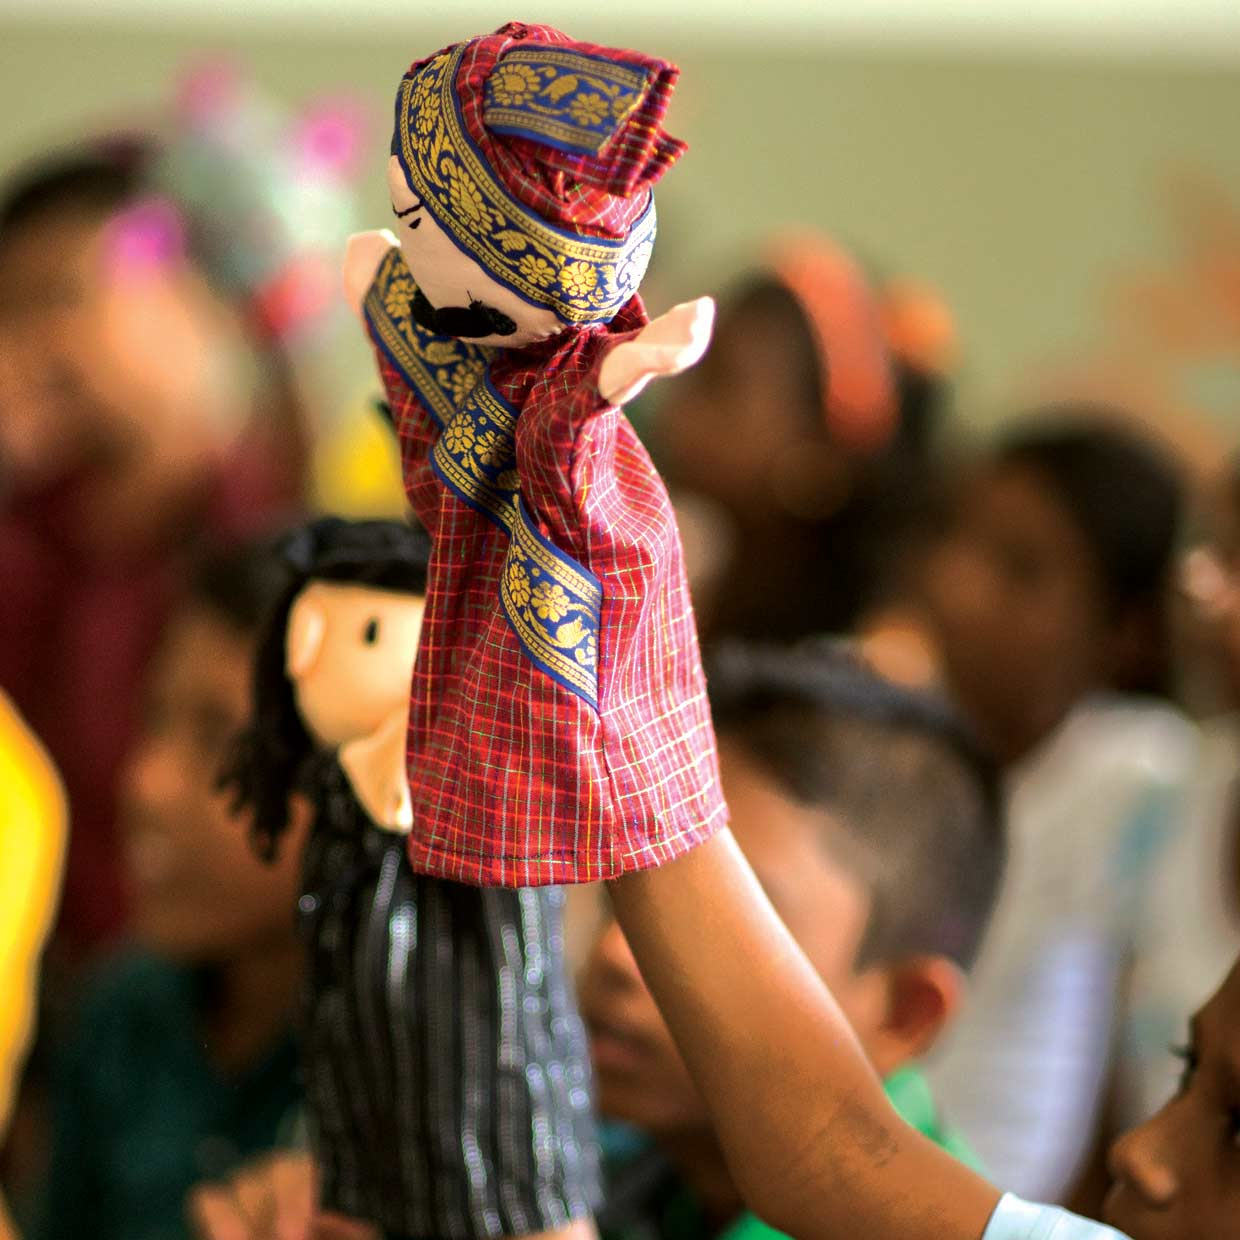 MJF Kids at the Moratuwa Foundation Centre explore creativity through puppetry. The Moratuwa Centre plays a special part in providing educational and creative support for children from marginalised communities since its establishment in 2009.